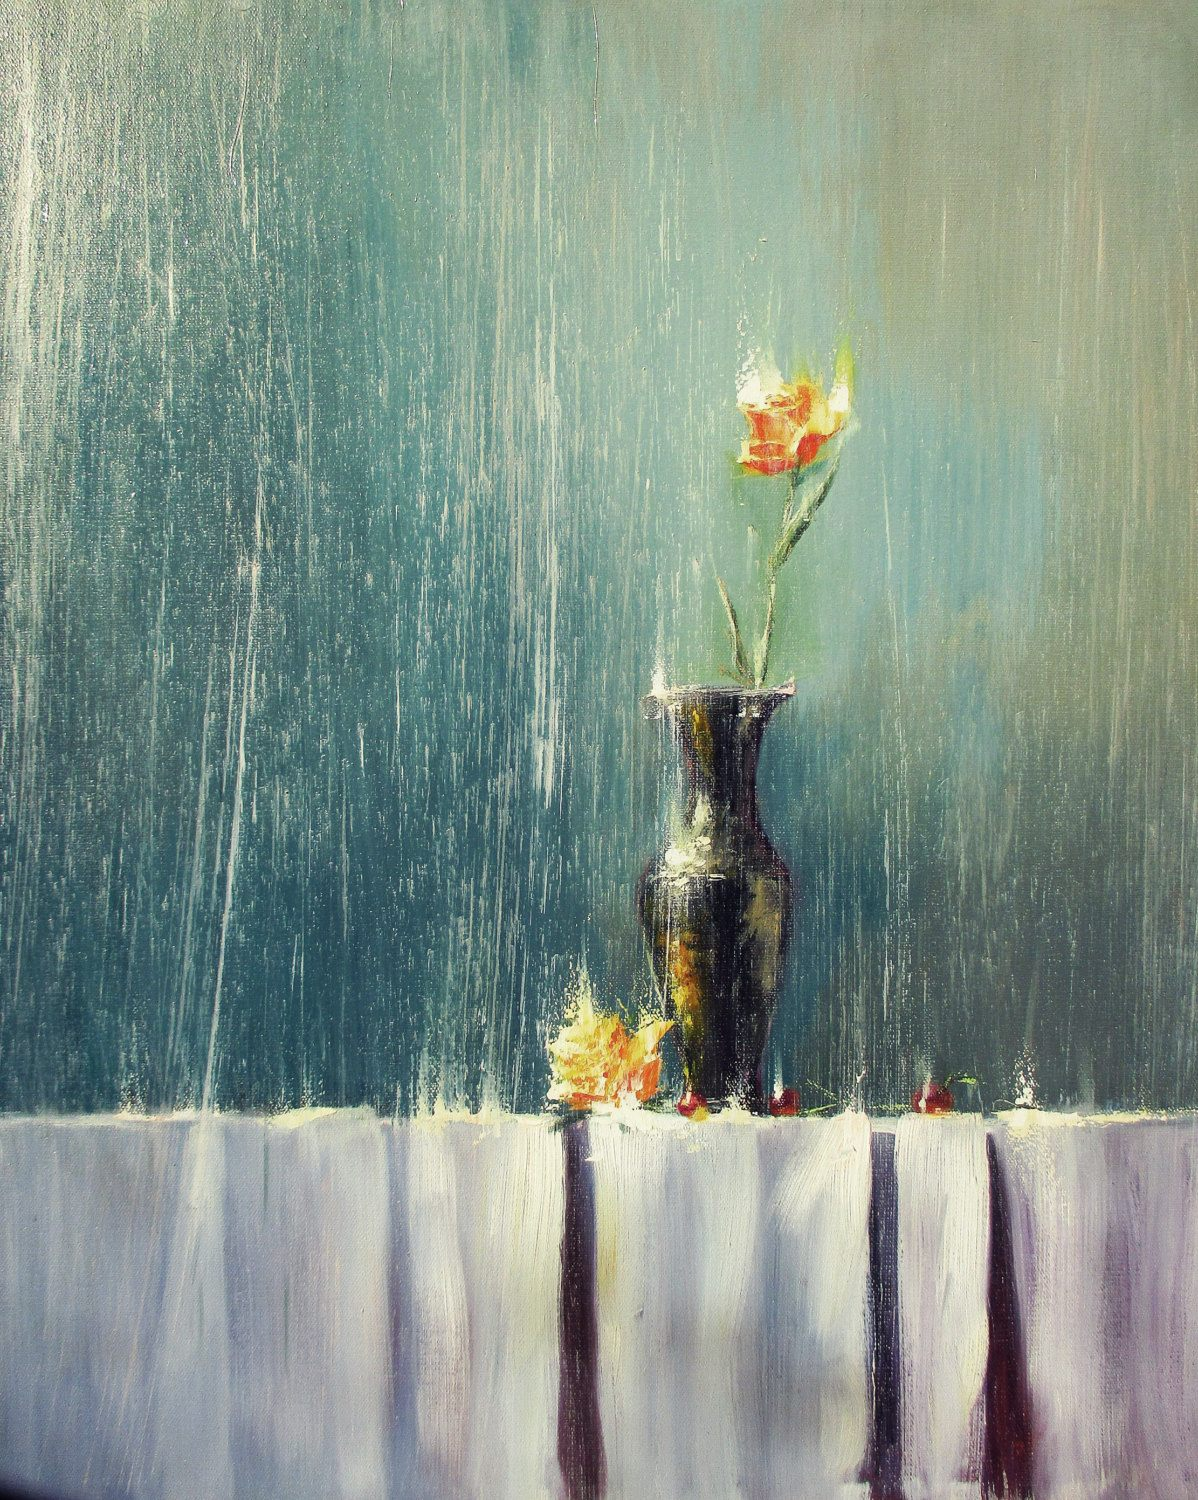 Under the Rain by Loo1Cool